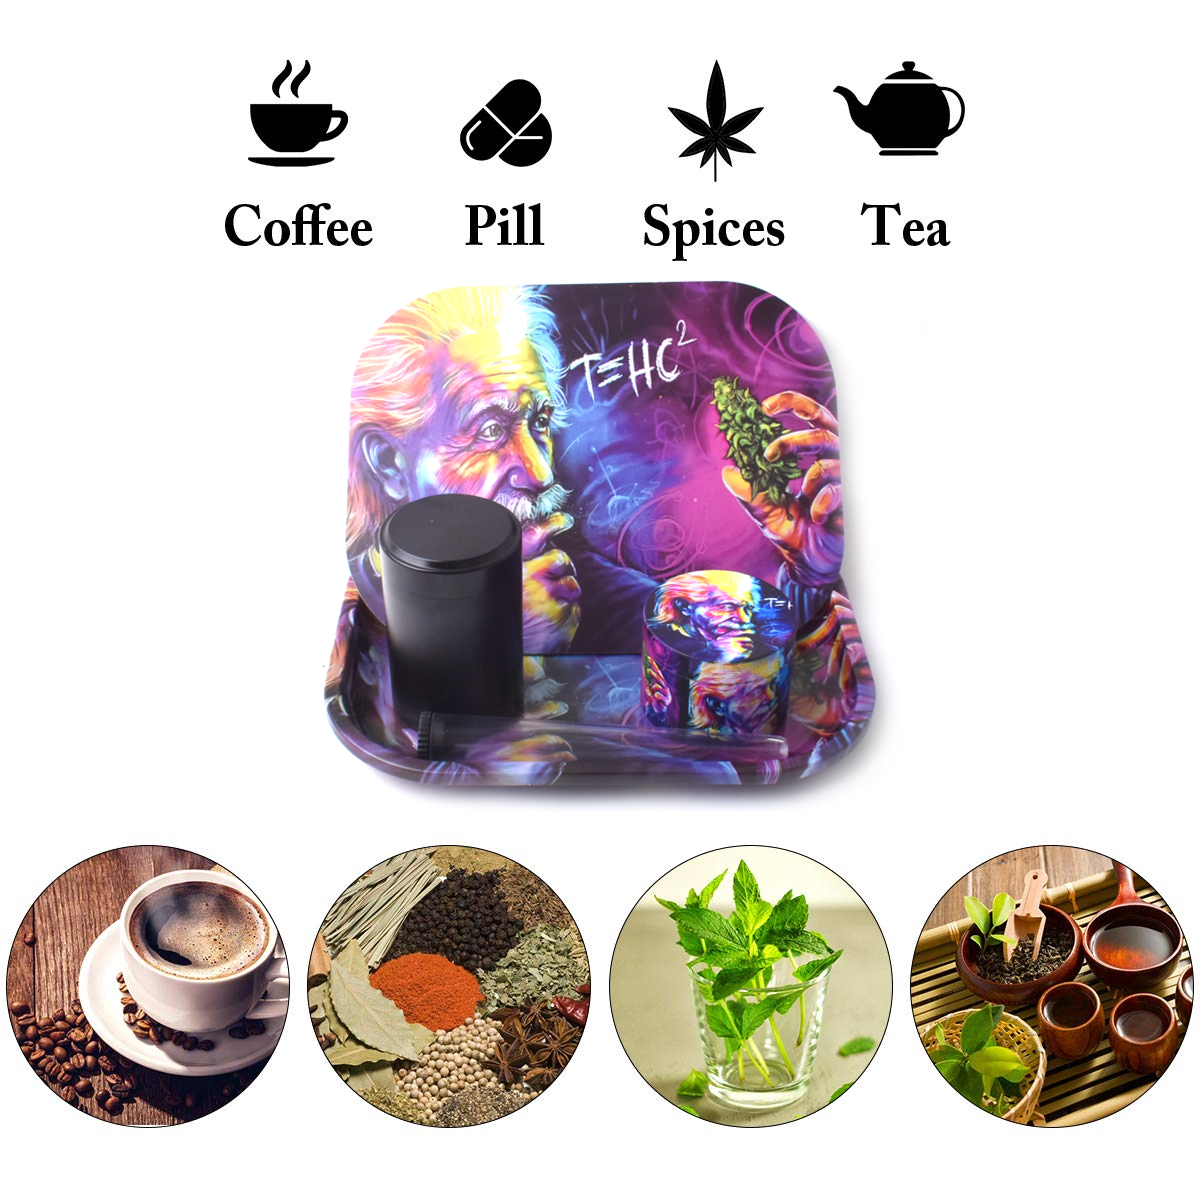 Rolling Tray Weed Grinder Set with Magnetic Lid 18X14cm Rolling Papers Tobacco Grinders Metal Trays Kit Smoking Accessories 6